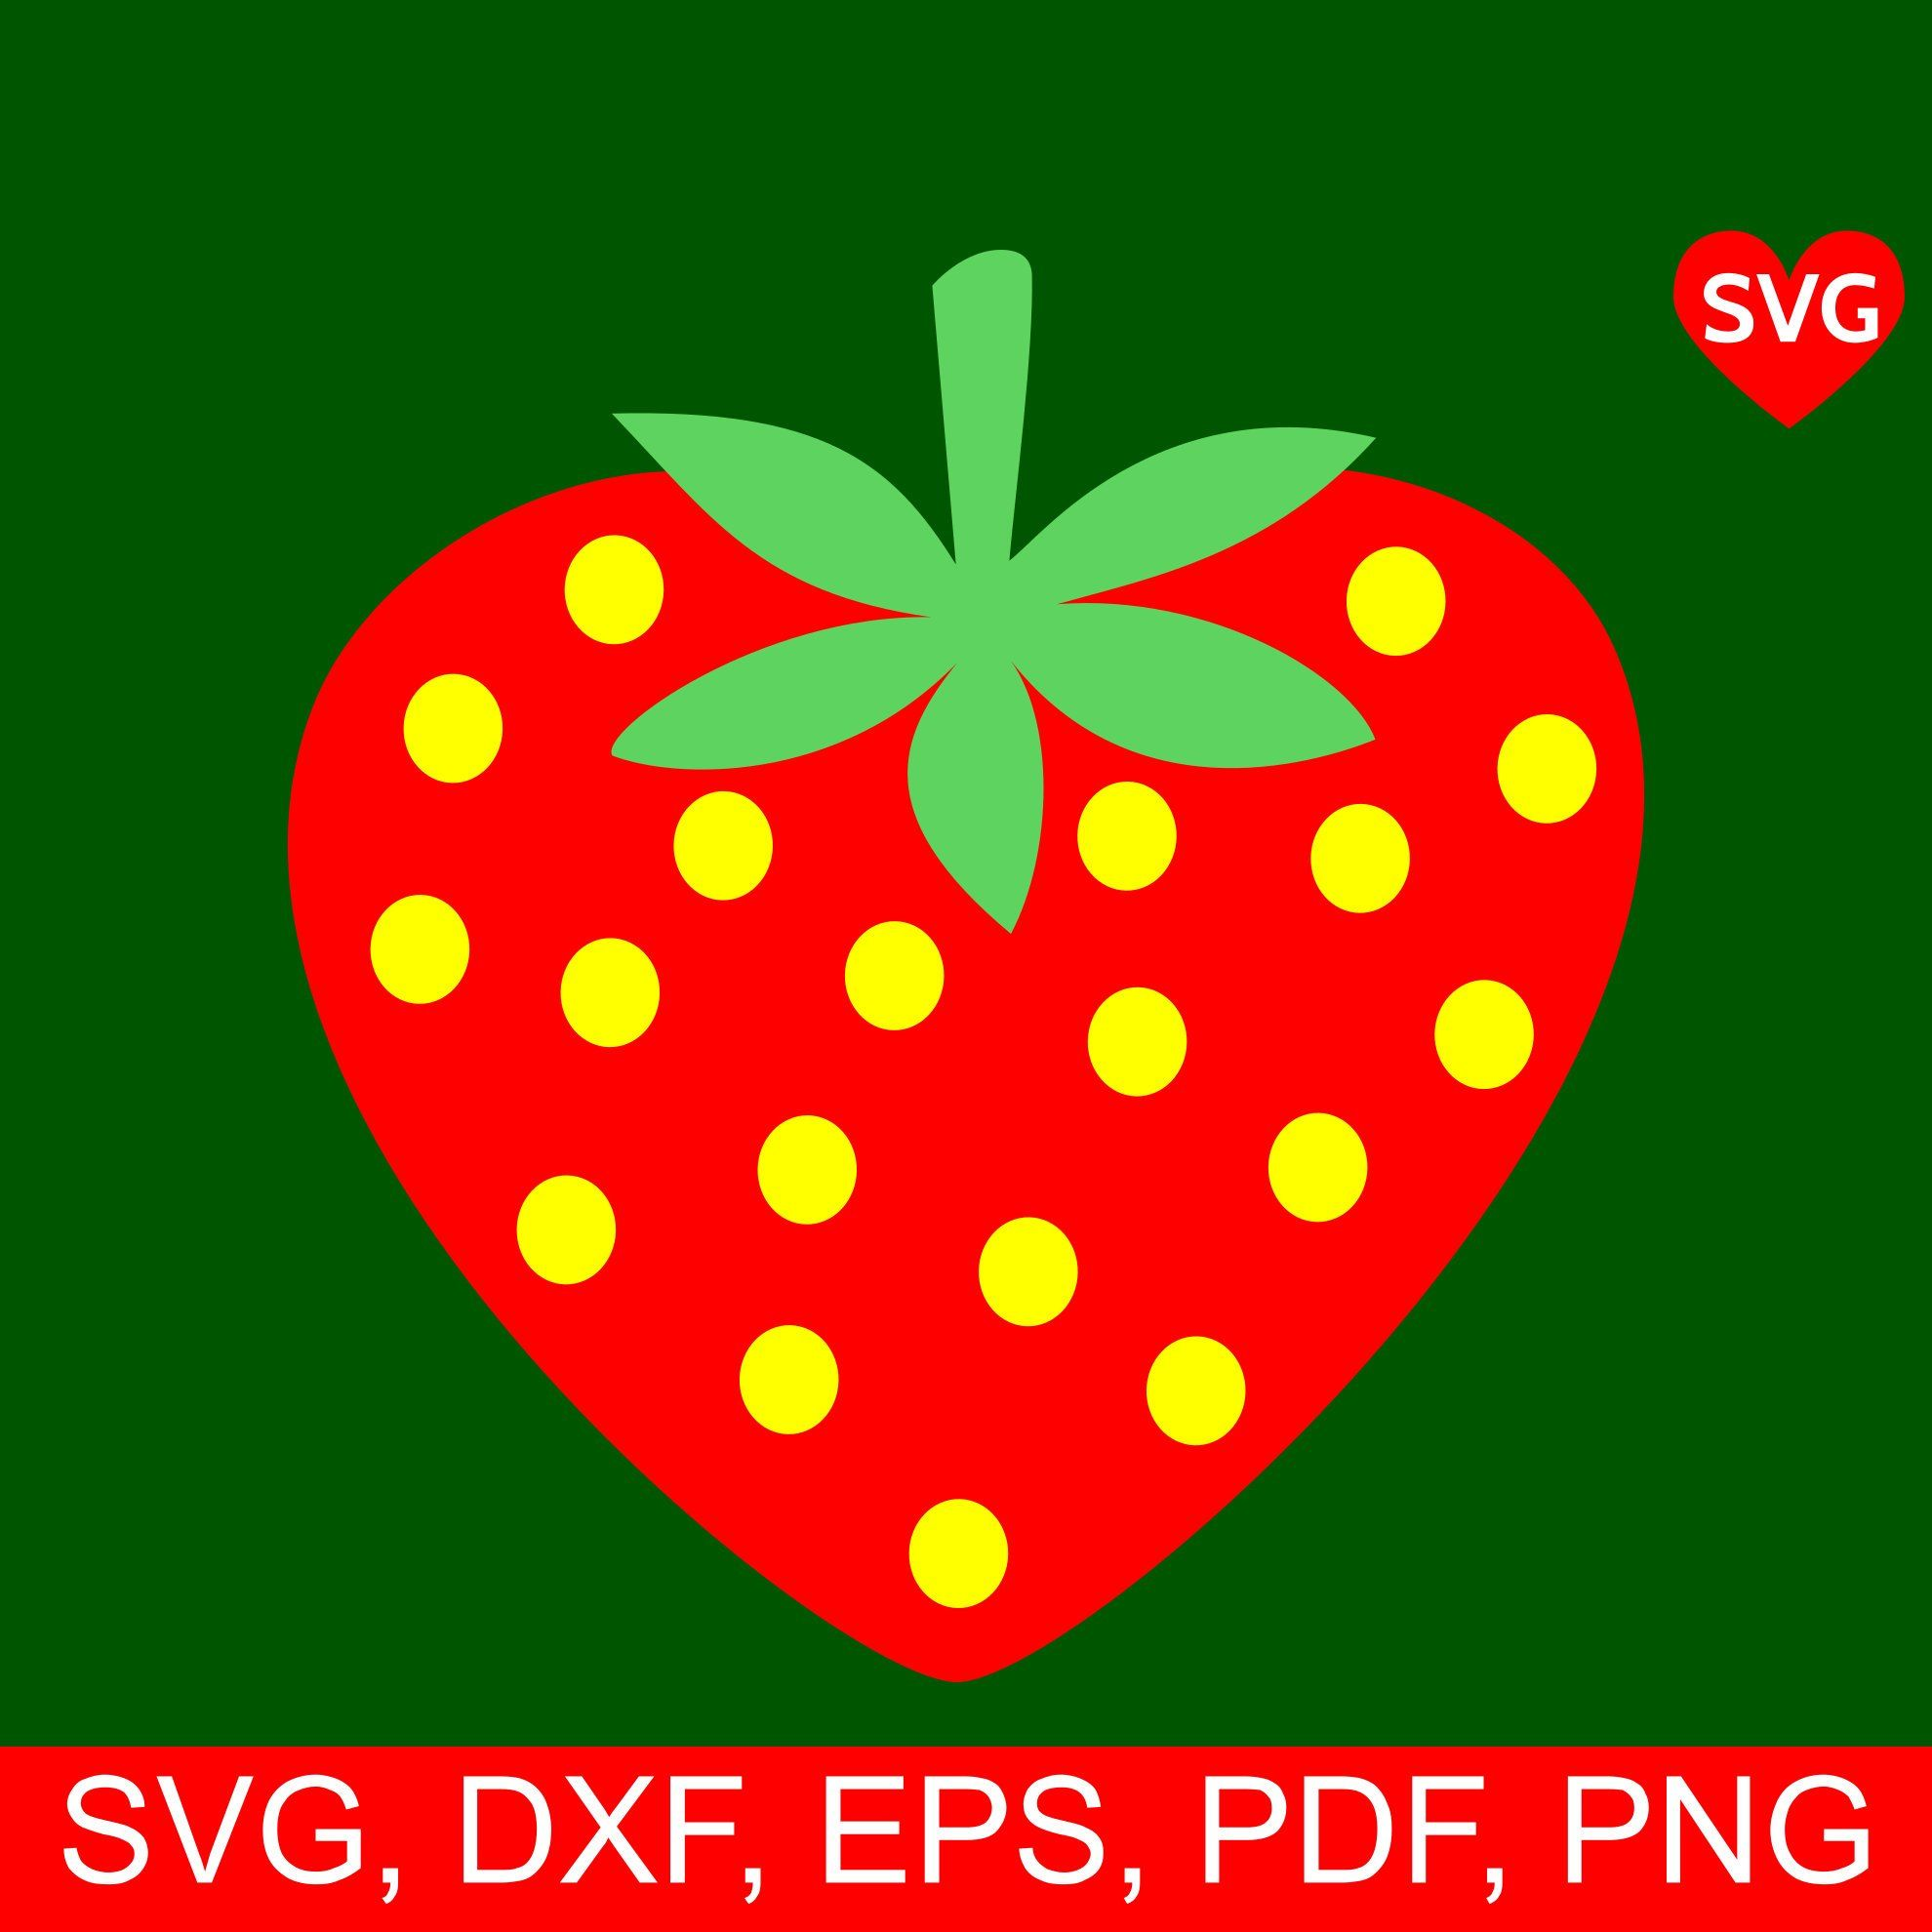 Pin On Svg Files And Printable Clipart For Diy And Crafts Projects